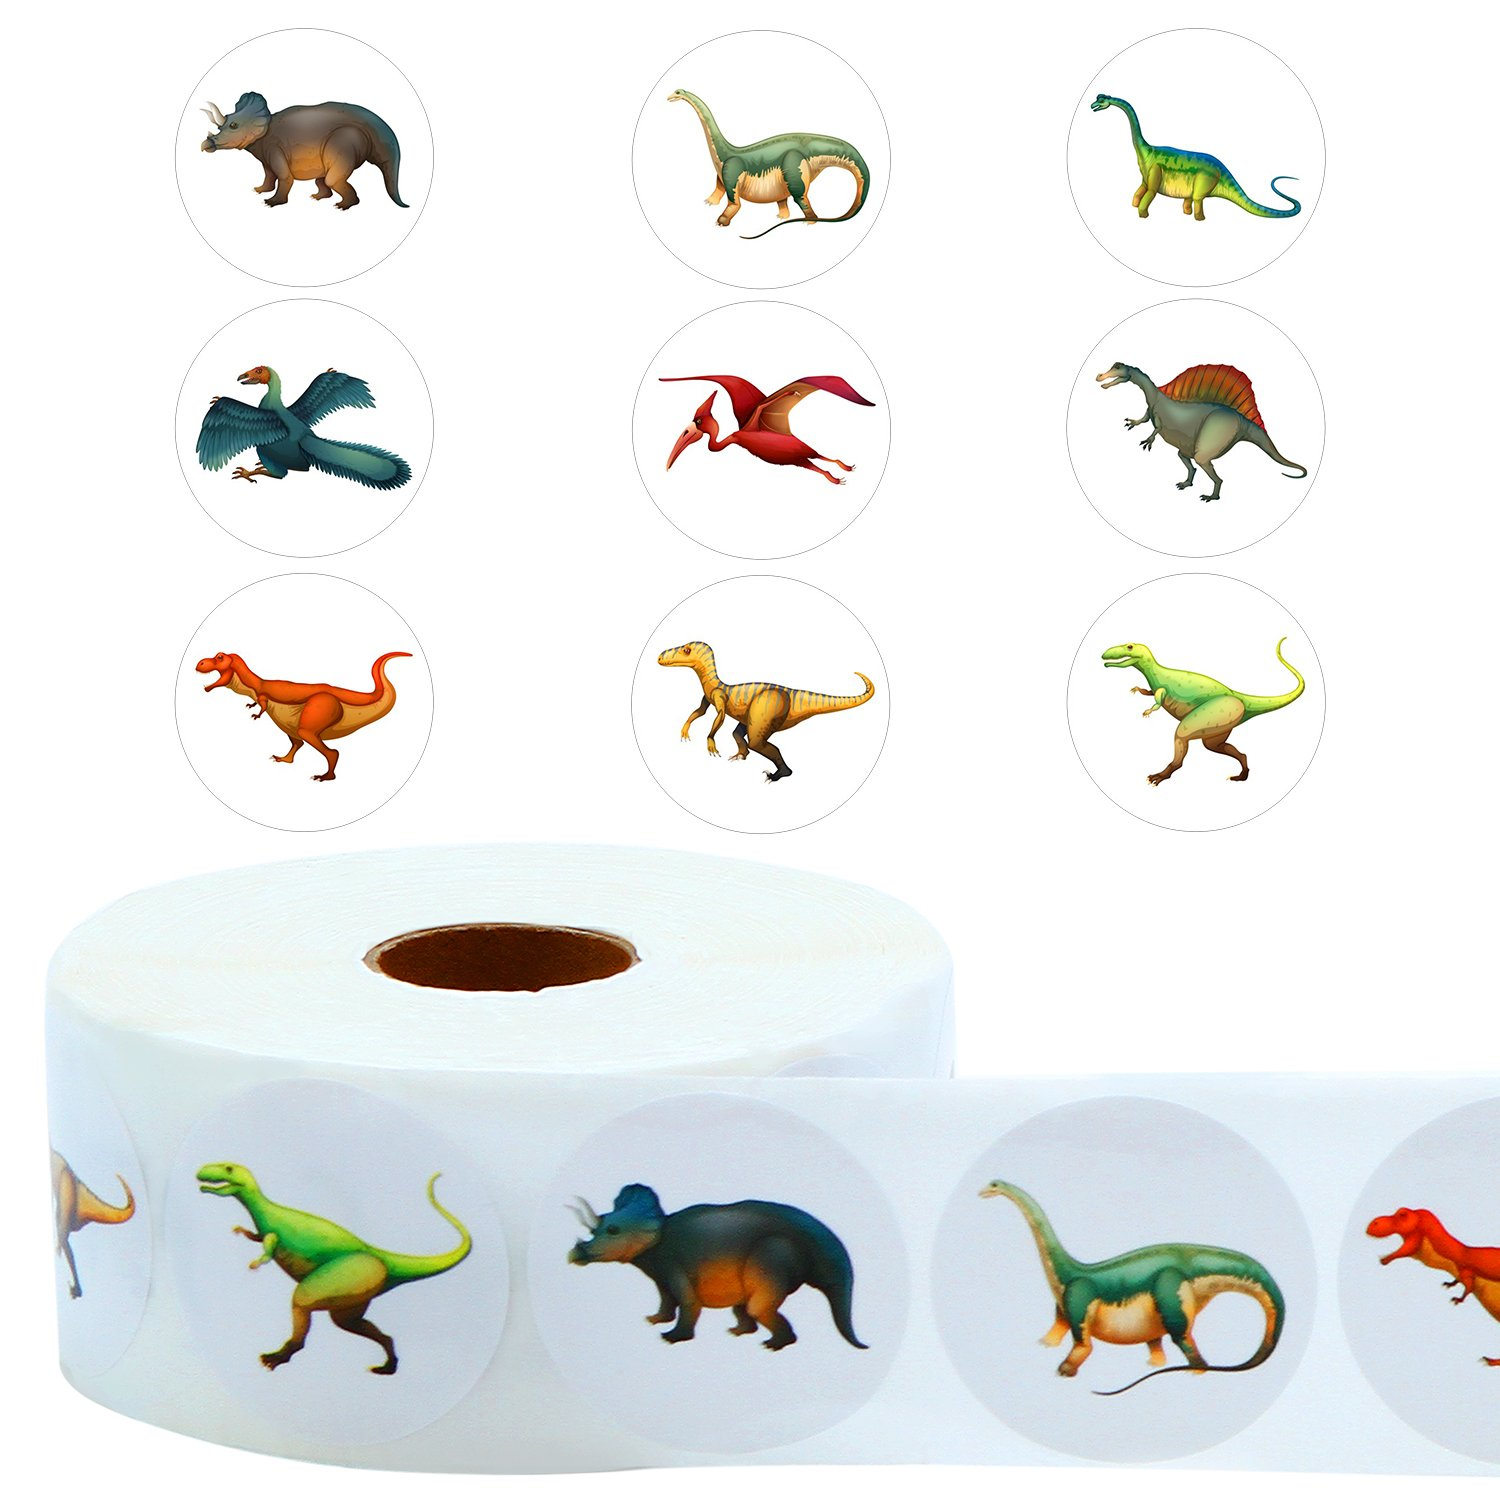 Coobey 999 Pieces Dinosaur Stickers Round Assorted Dinosaur Figures Stickers for Kids Education Toy or Party Favor, 10 Style on a Roll, 1.5 Inches